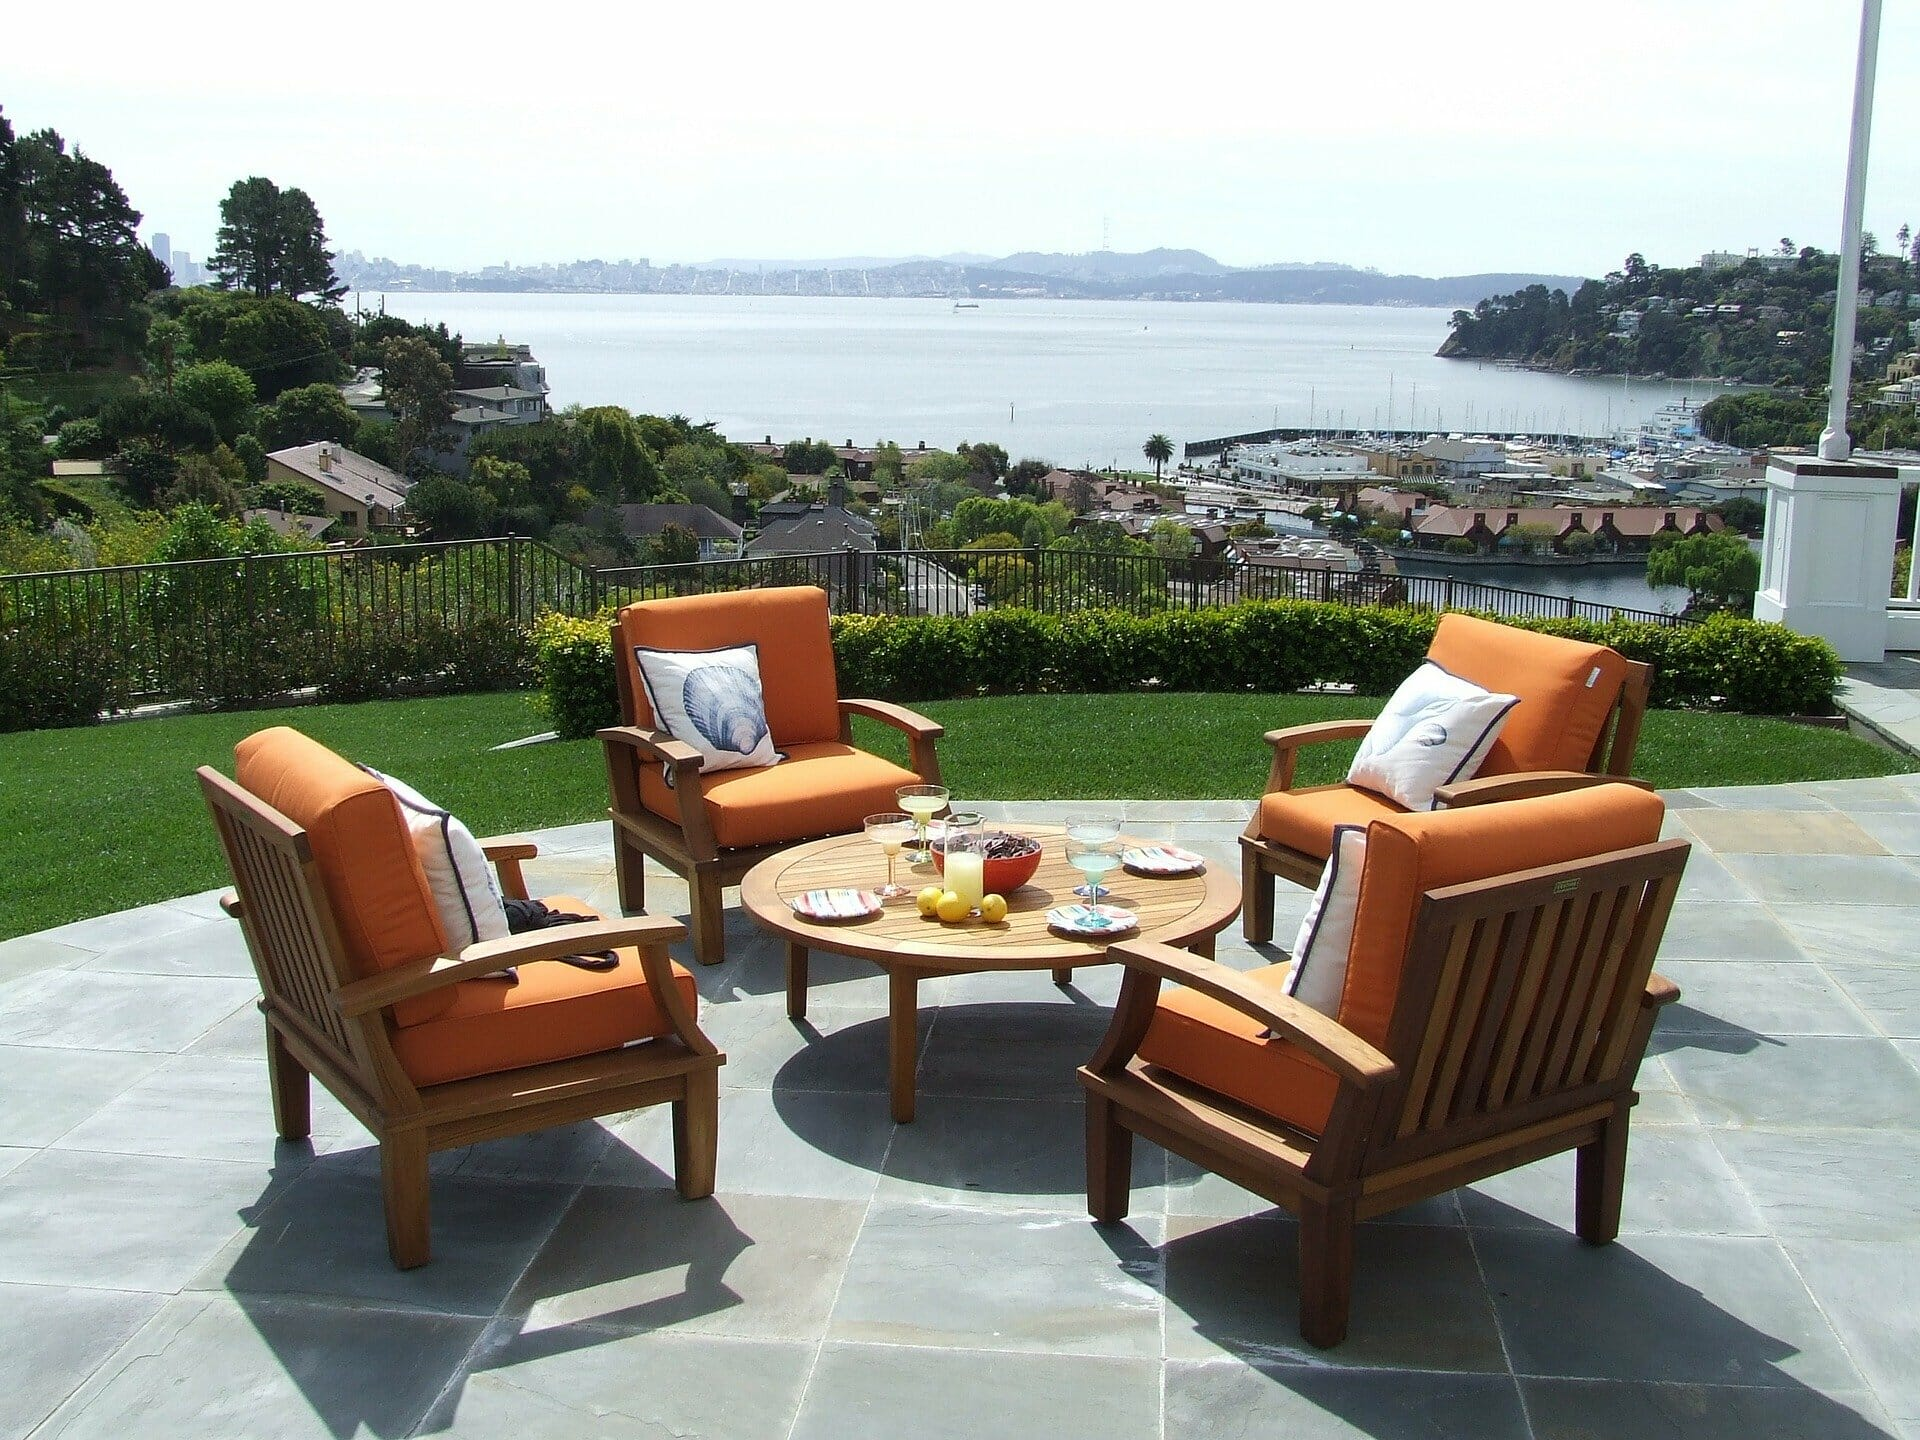 Considering Reclaimed Wood Outdoor Furniture